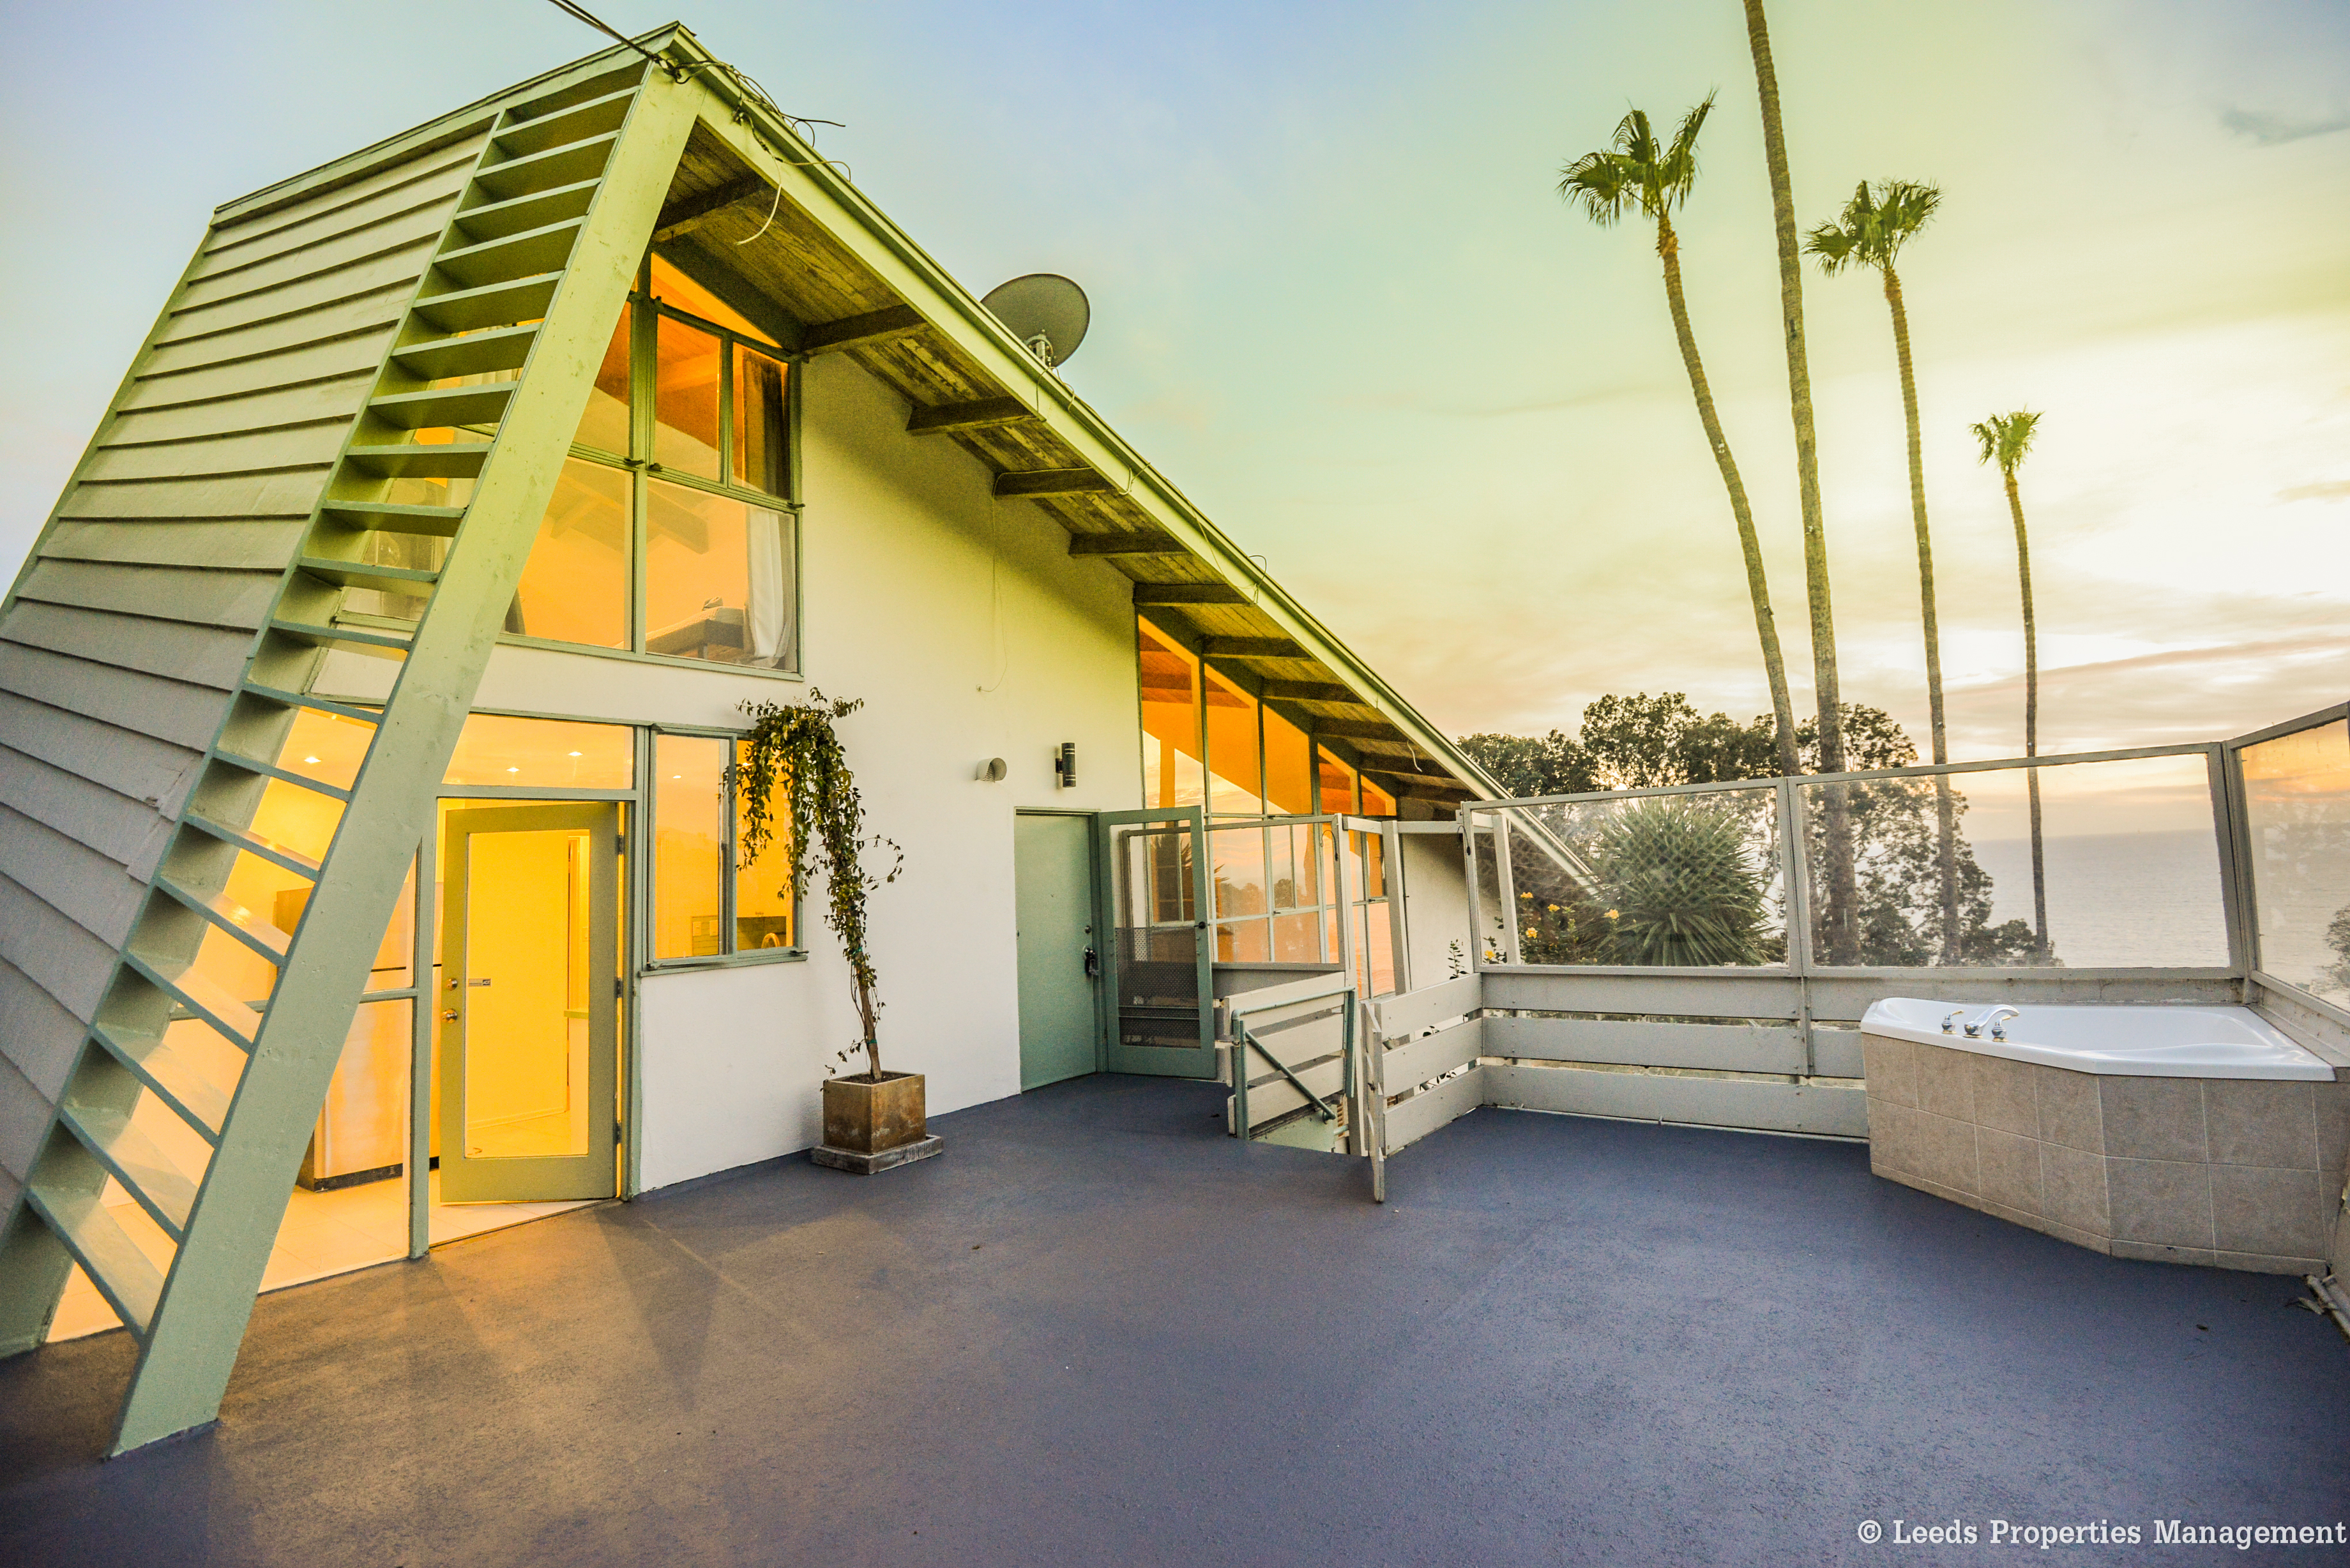 17050 Sunset Blvd., Pacific Palisades, CA 90272